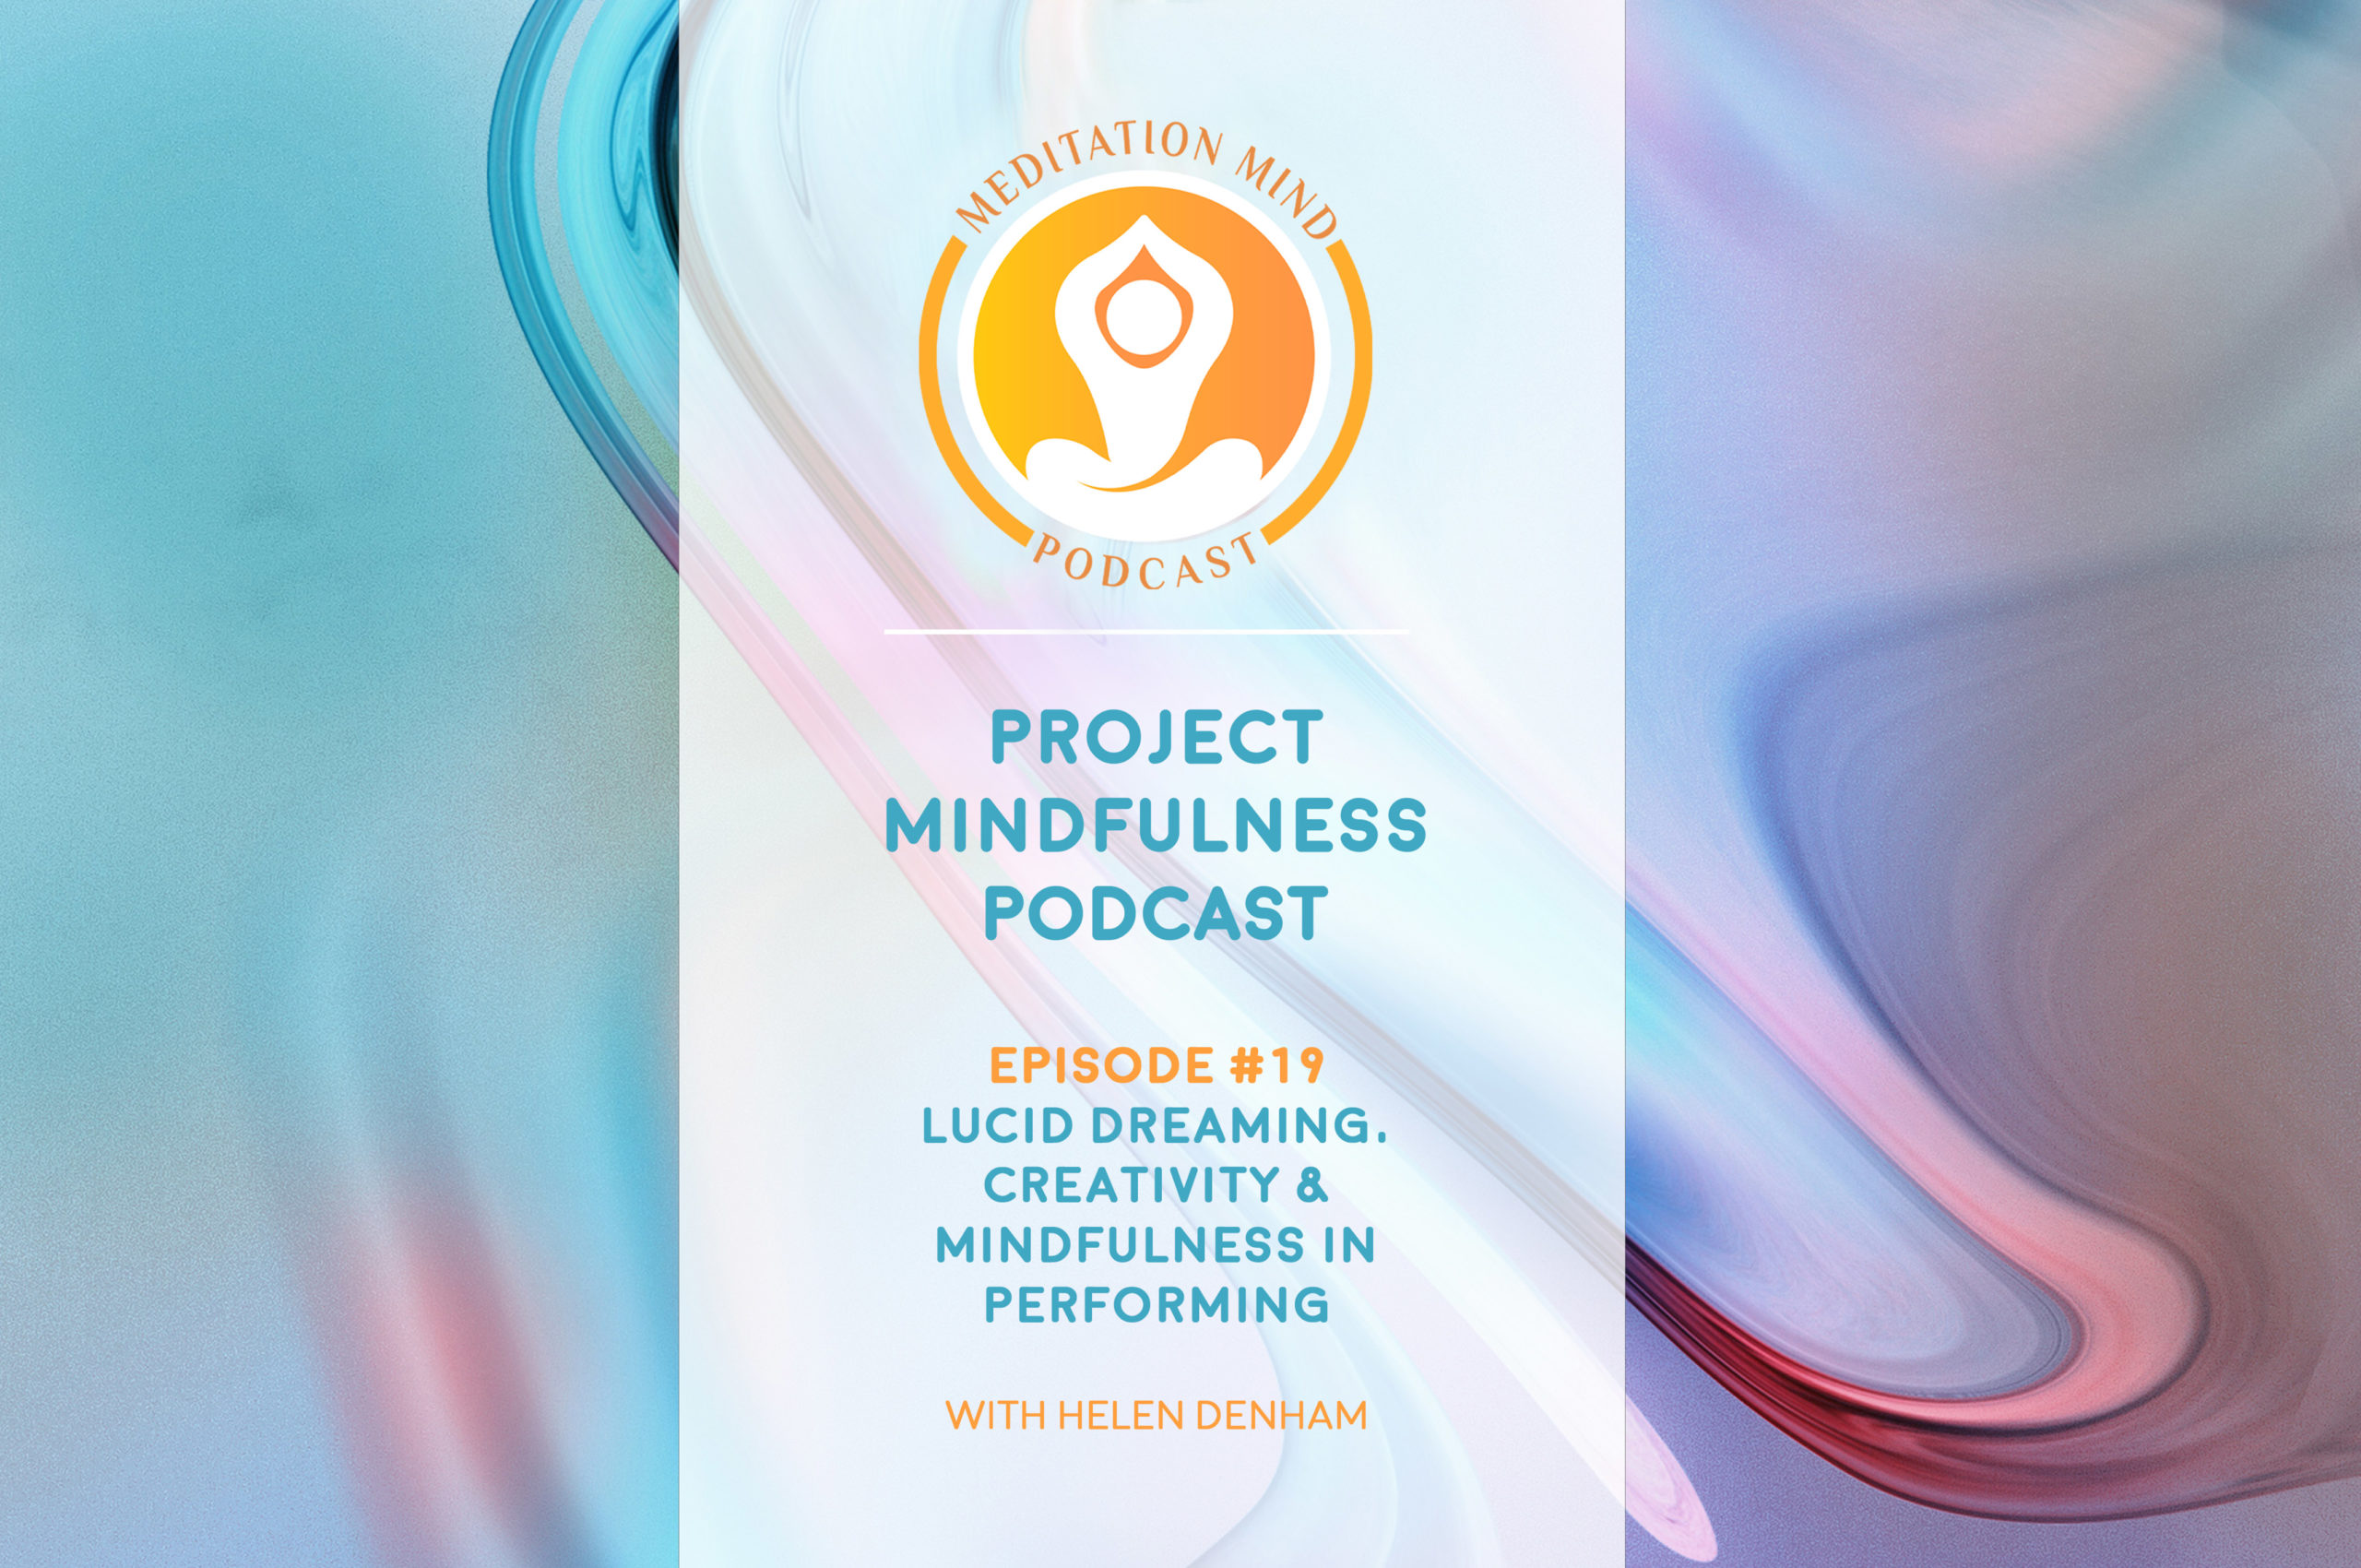 We talk about lucid dreaming, creativity and mindfulnes in performance